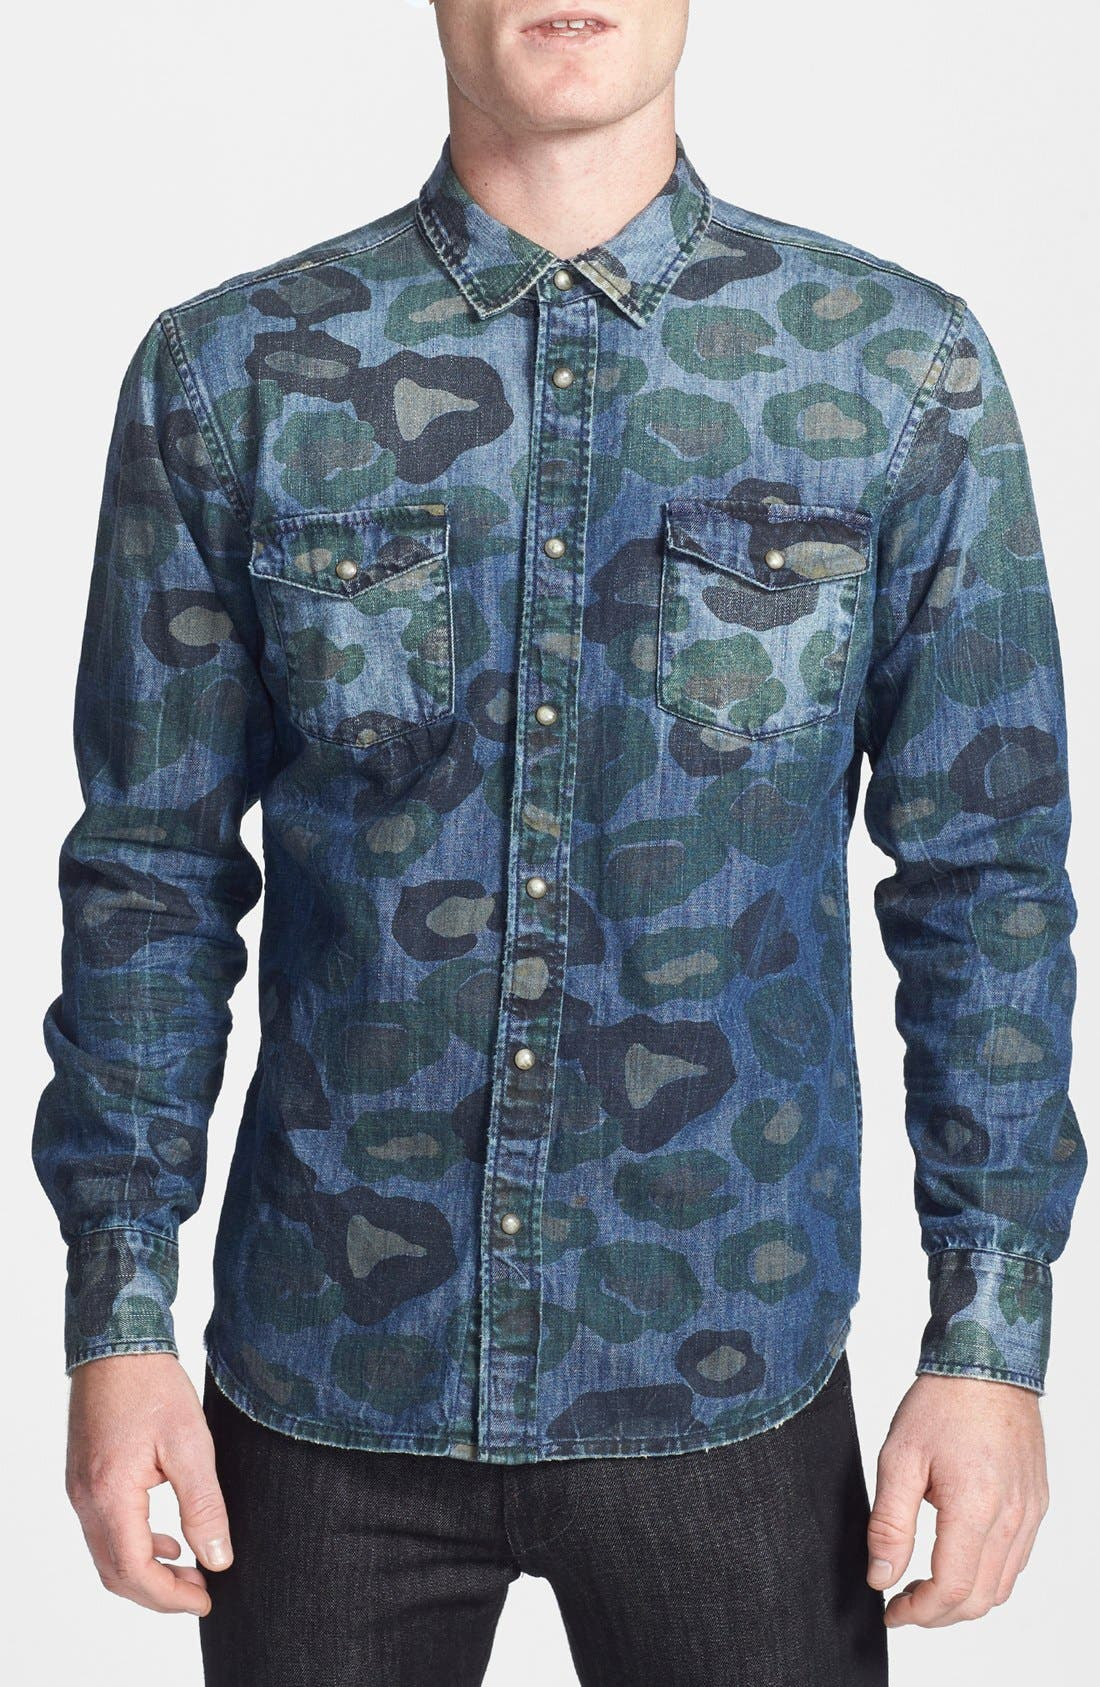 Main Image - ZANEROBE 'Cats with Guns' Camo Print Denim Shirt